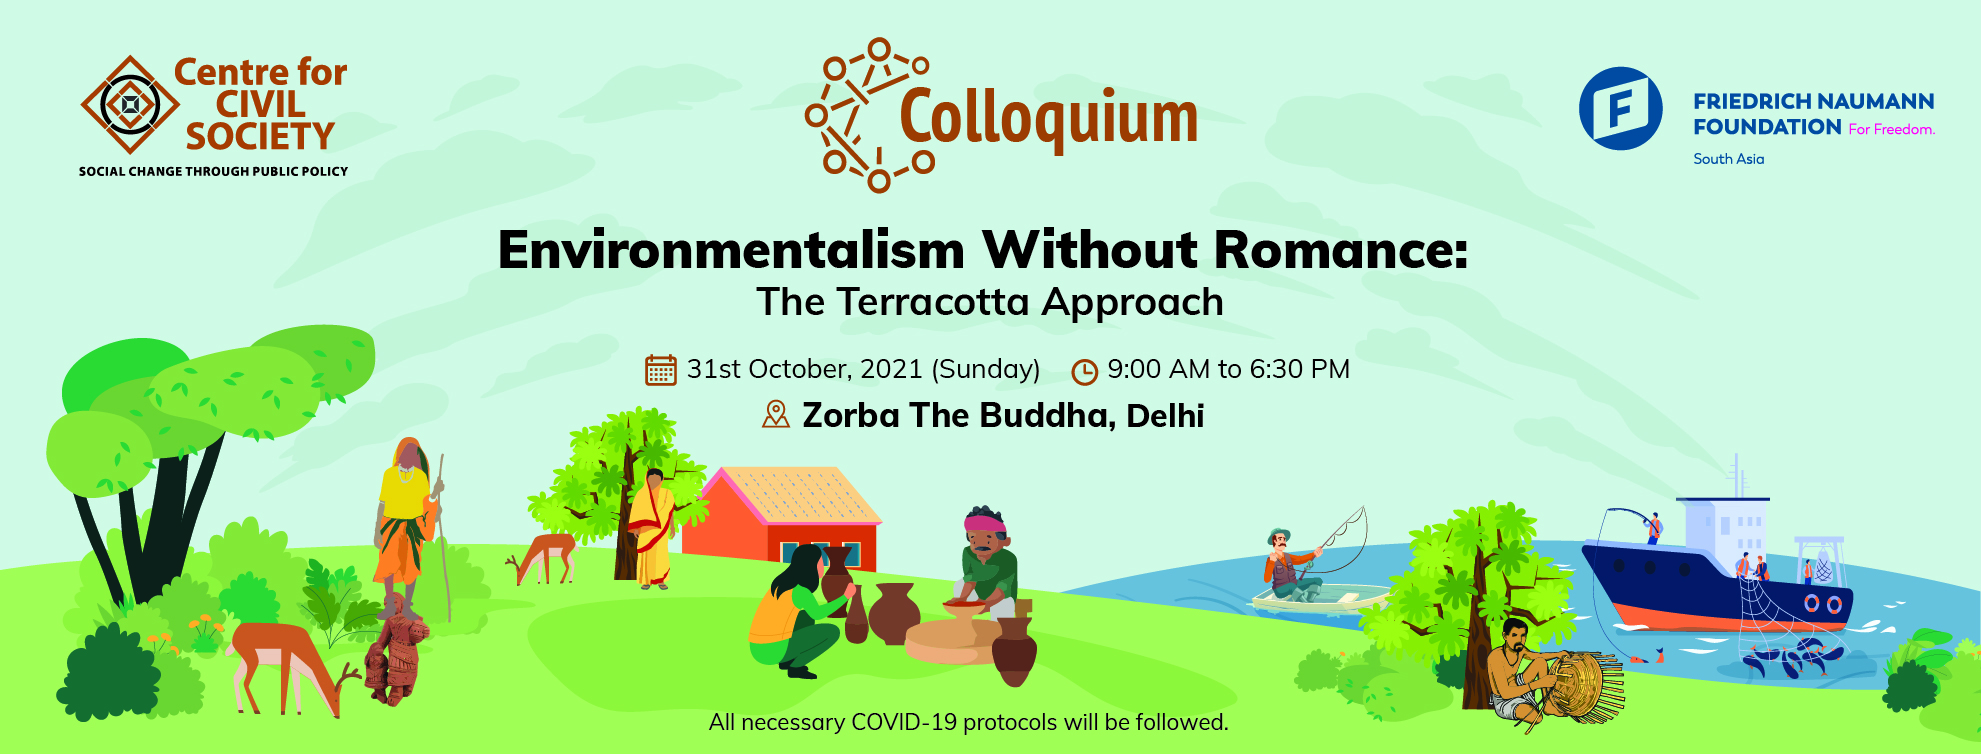 Colloquium on Environmentalism Without Romance: The Terracotta Approach